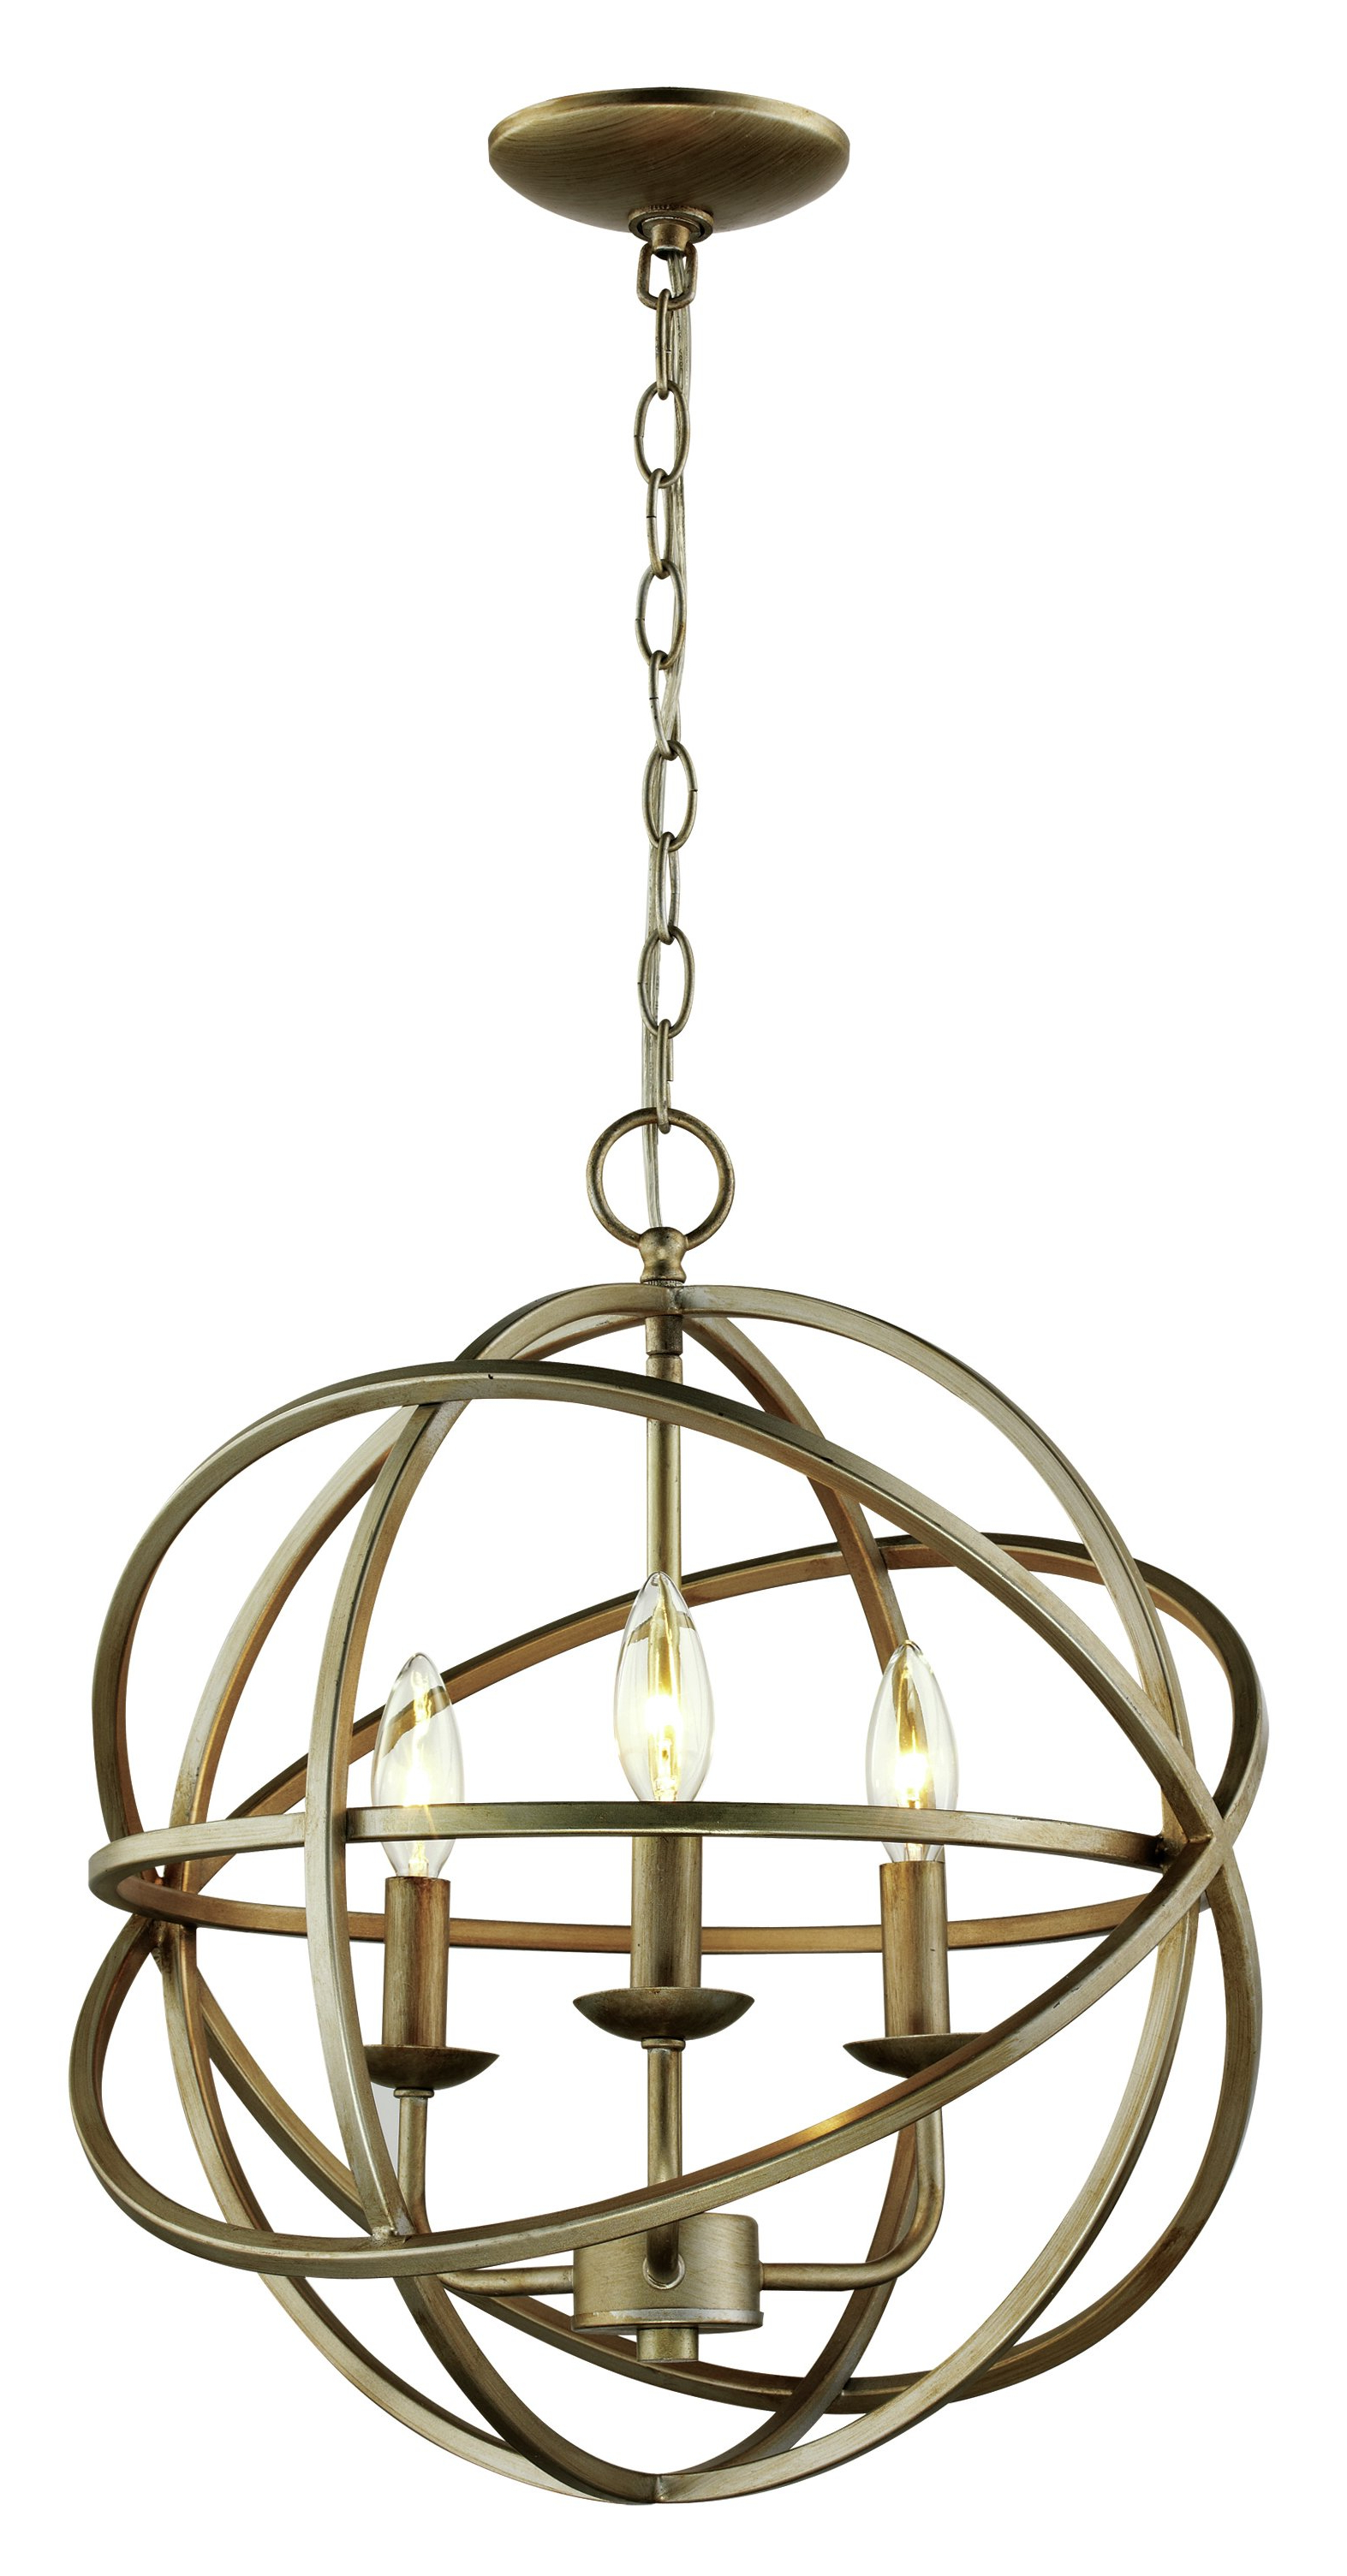 Famous La Barge 3 Light Globe Chandeliers Throughout Baitz 3 Light Globe Chandelier (Gallery 7 of 20)